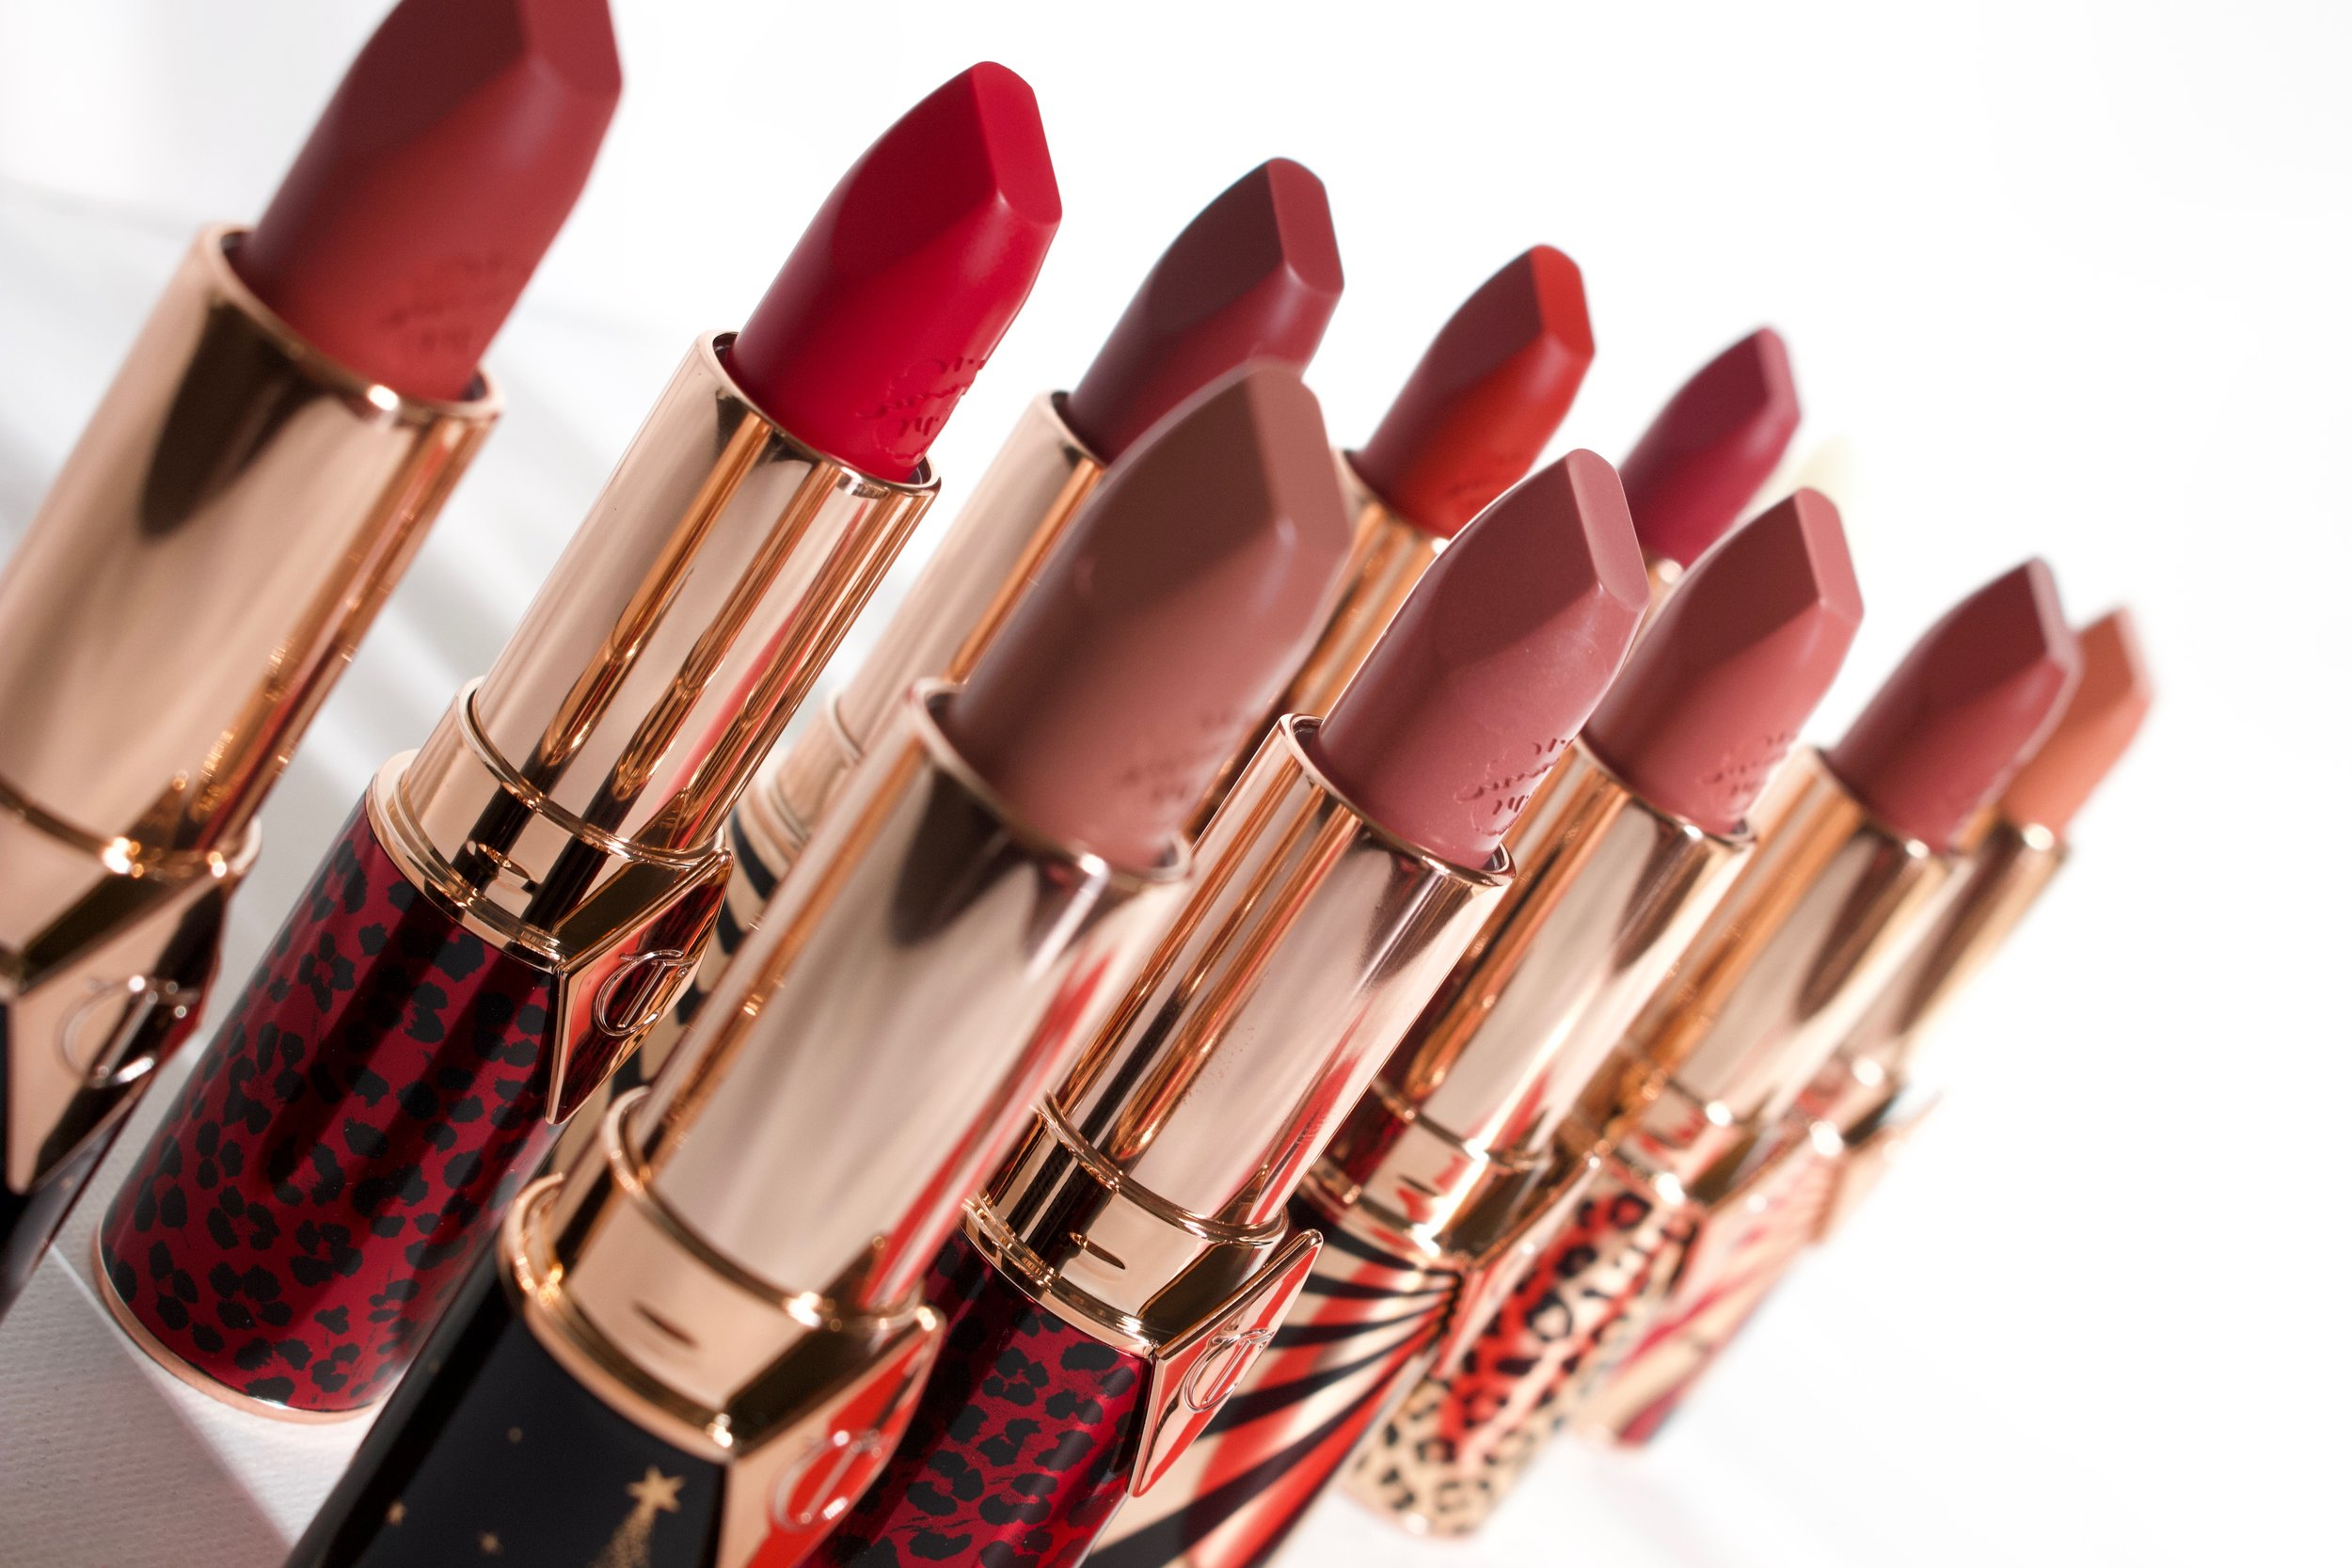 Charlotte Tilbury Hot Lips 2.0 Lipsticks